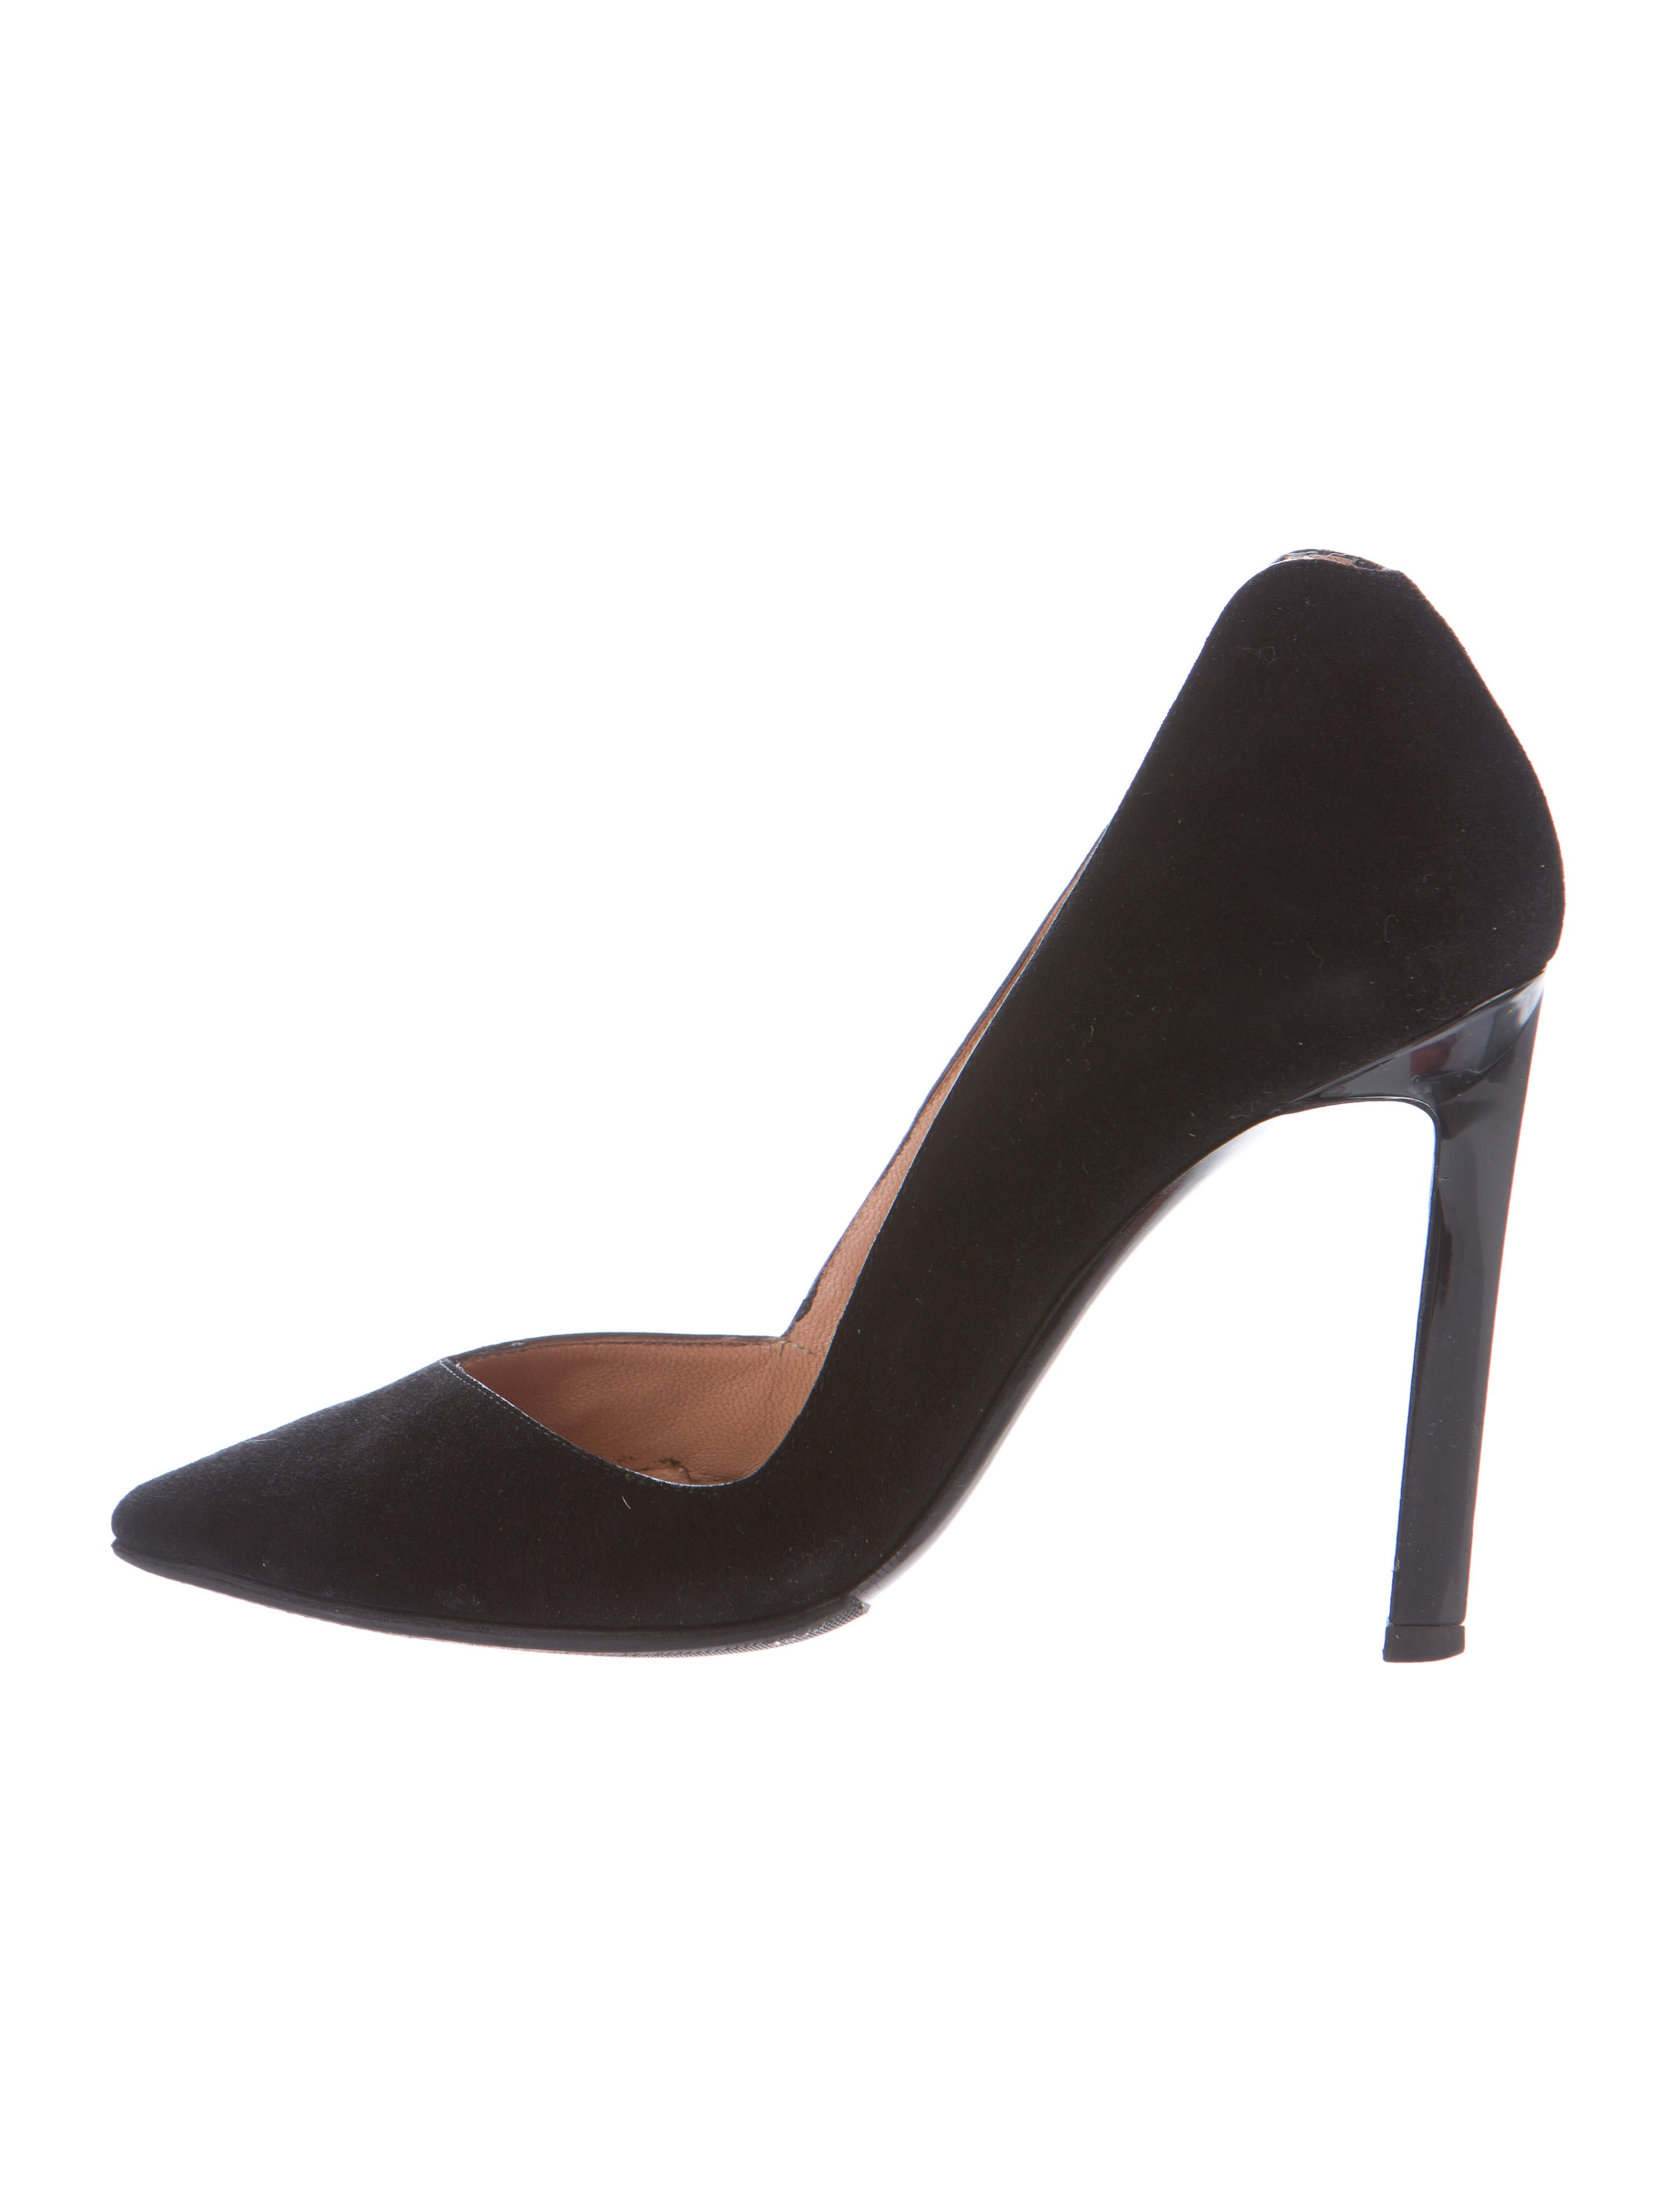 with paypal cheap online Roland Mouret Leather Pointed-Toe Pumps clearance enjoy 6GdrZTJJN5